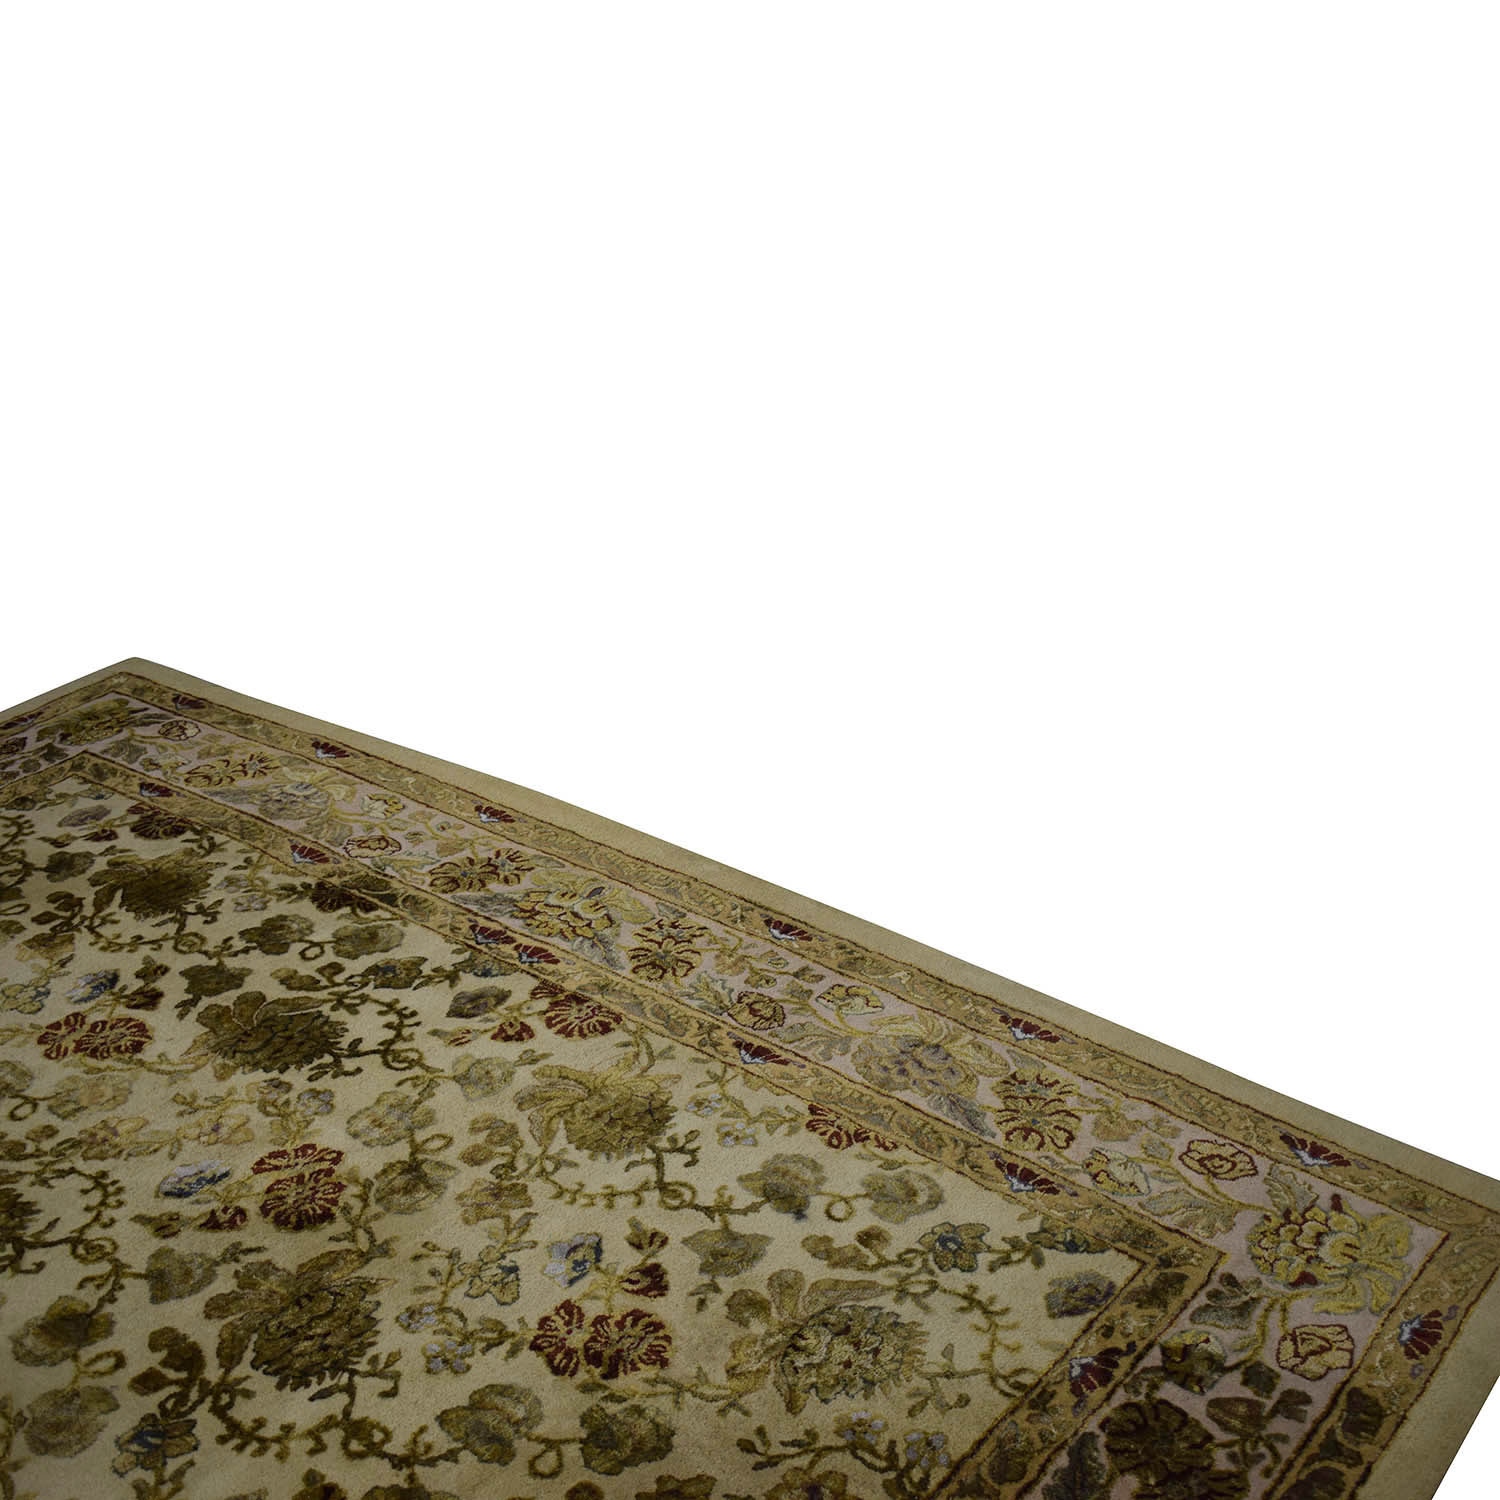 Ethan Allen Gold and Green Leaf Oriental Rug / Decor